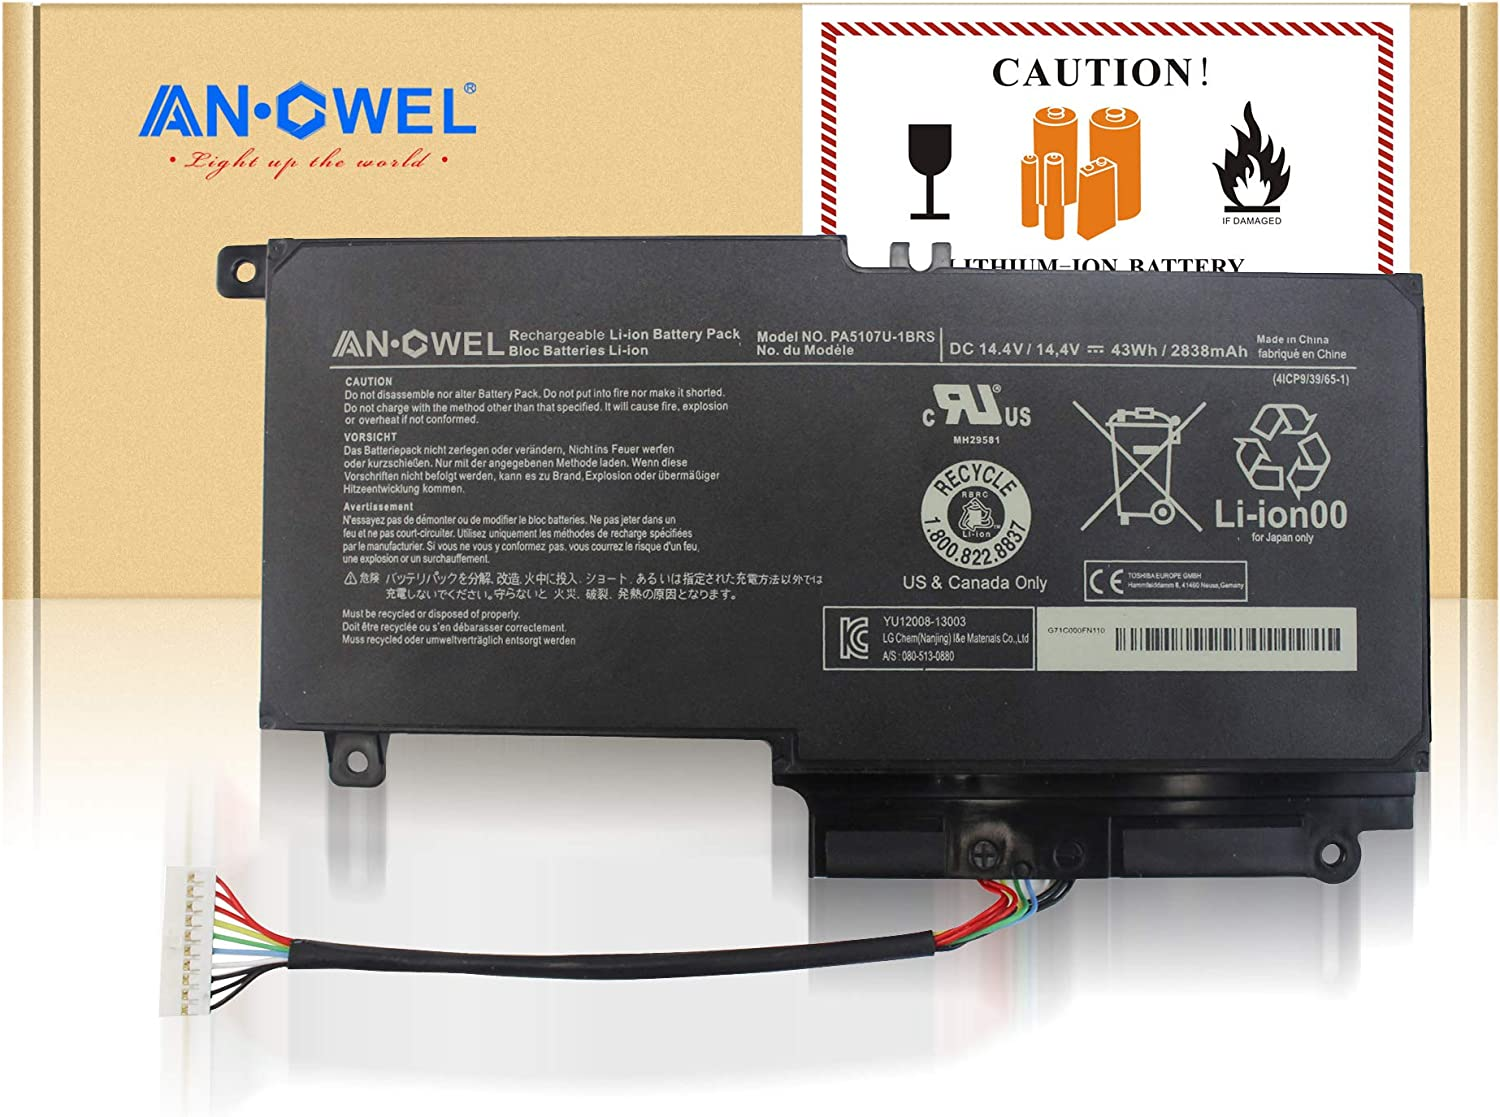 Angwel 14.4V 43Wh PA5107U-1BRS Replacement Battery for Toshiba L45D L50 L55 P55 L55t P50 Series Laptop P55-a5312 P55T-A5116 S50D-A L50-A S50T-A116 S55-A5275 L55t-A5290 P000573230-1 Year Warranty